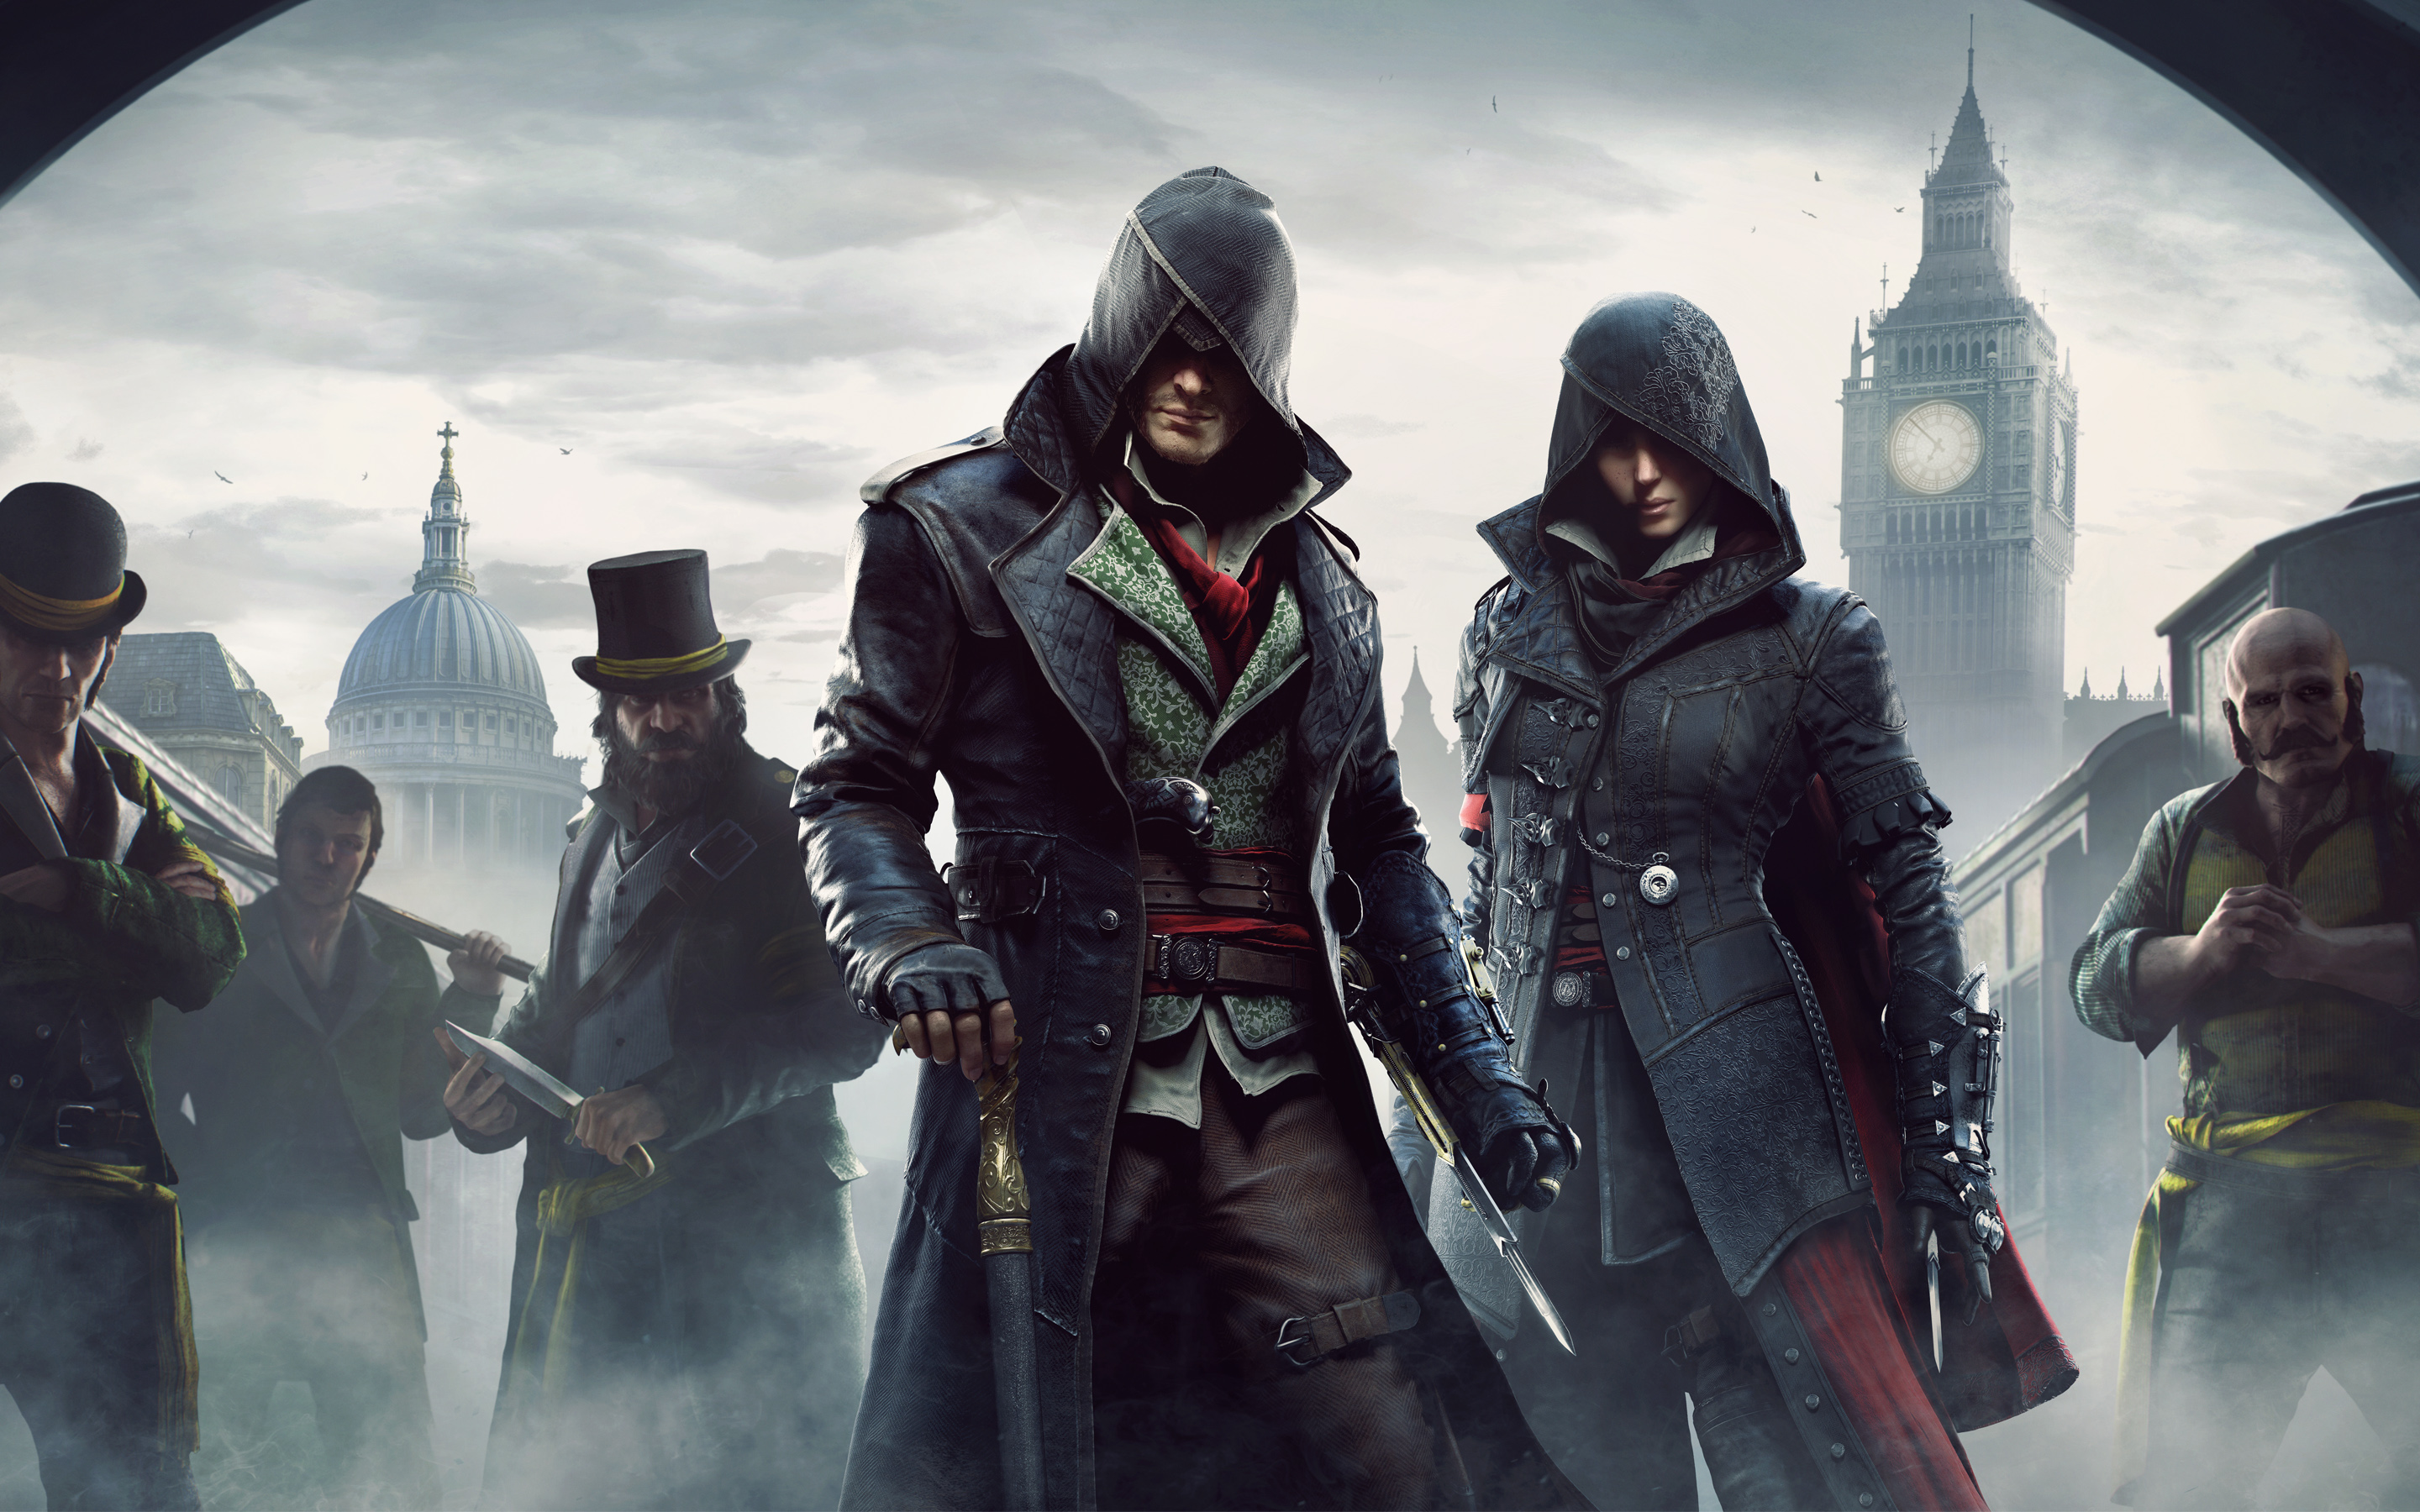 Meta-Review: Assassin's Creed Syndicate (PS4, Xbox One, PC